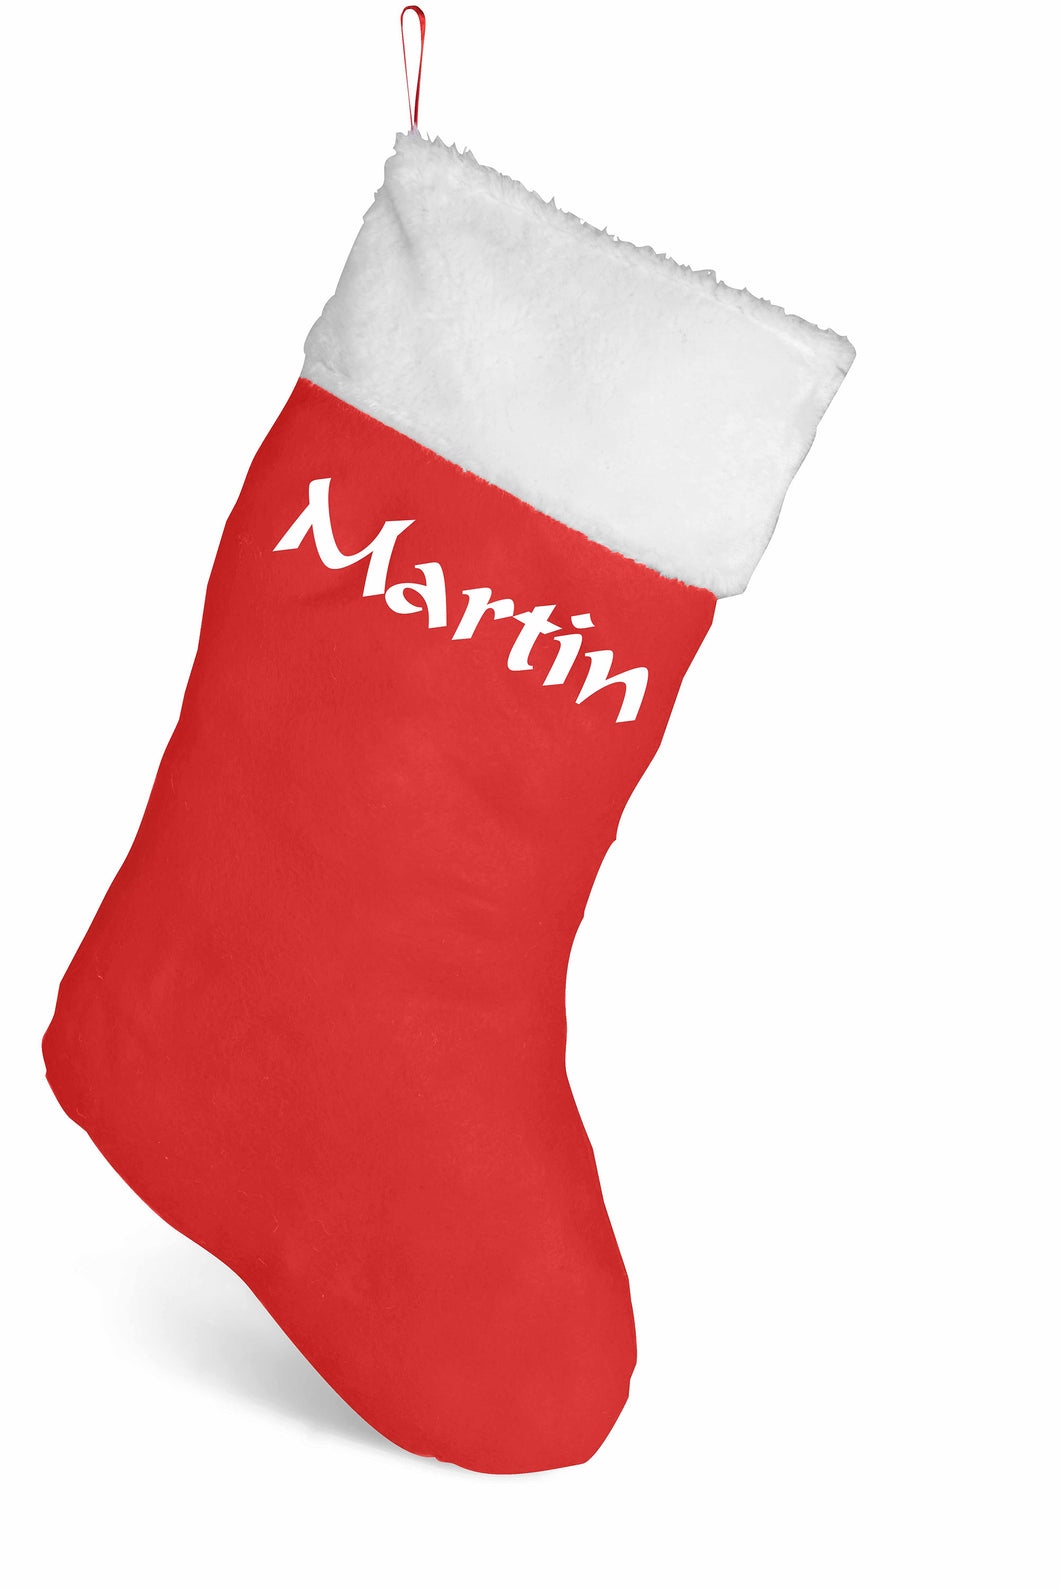 Personalised Christmas Stocking - name only.